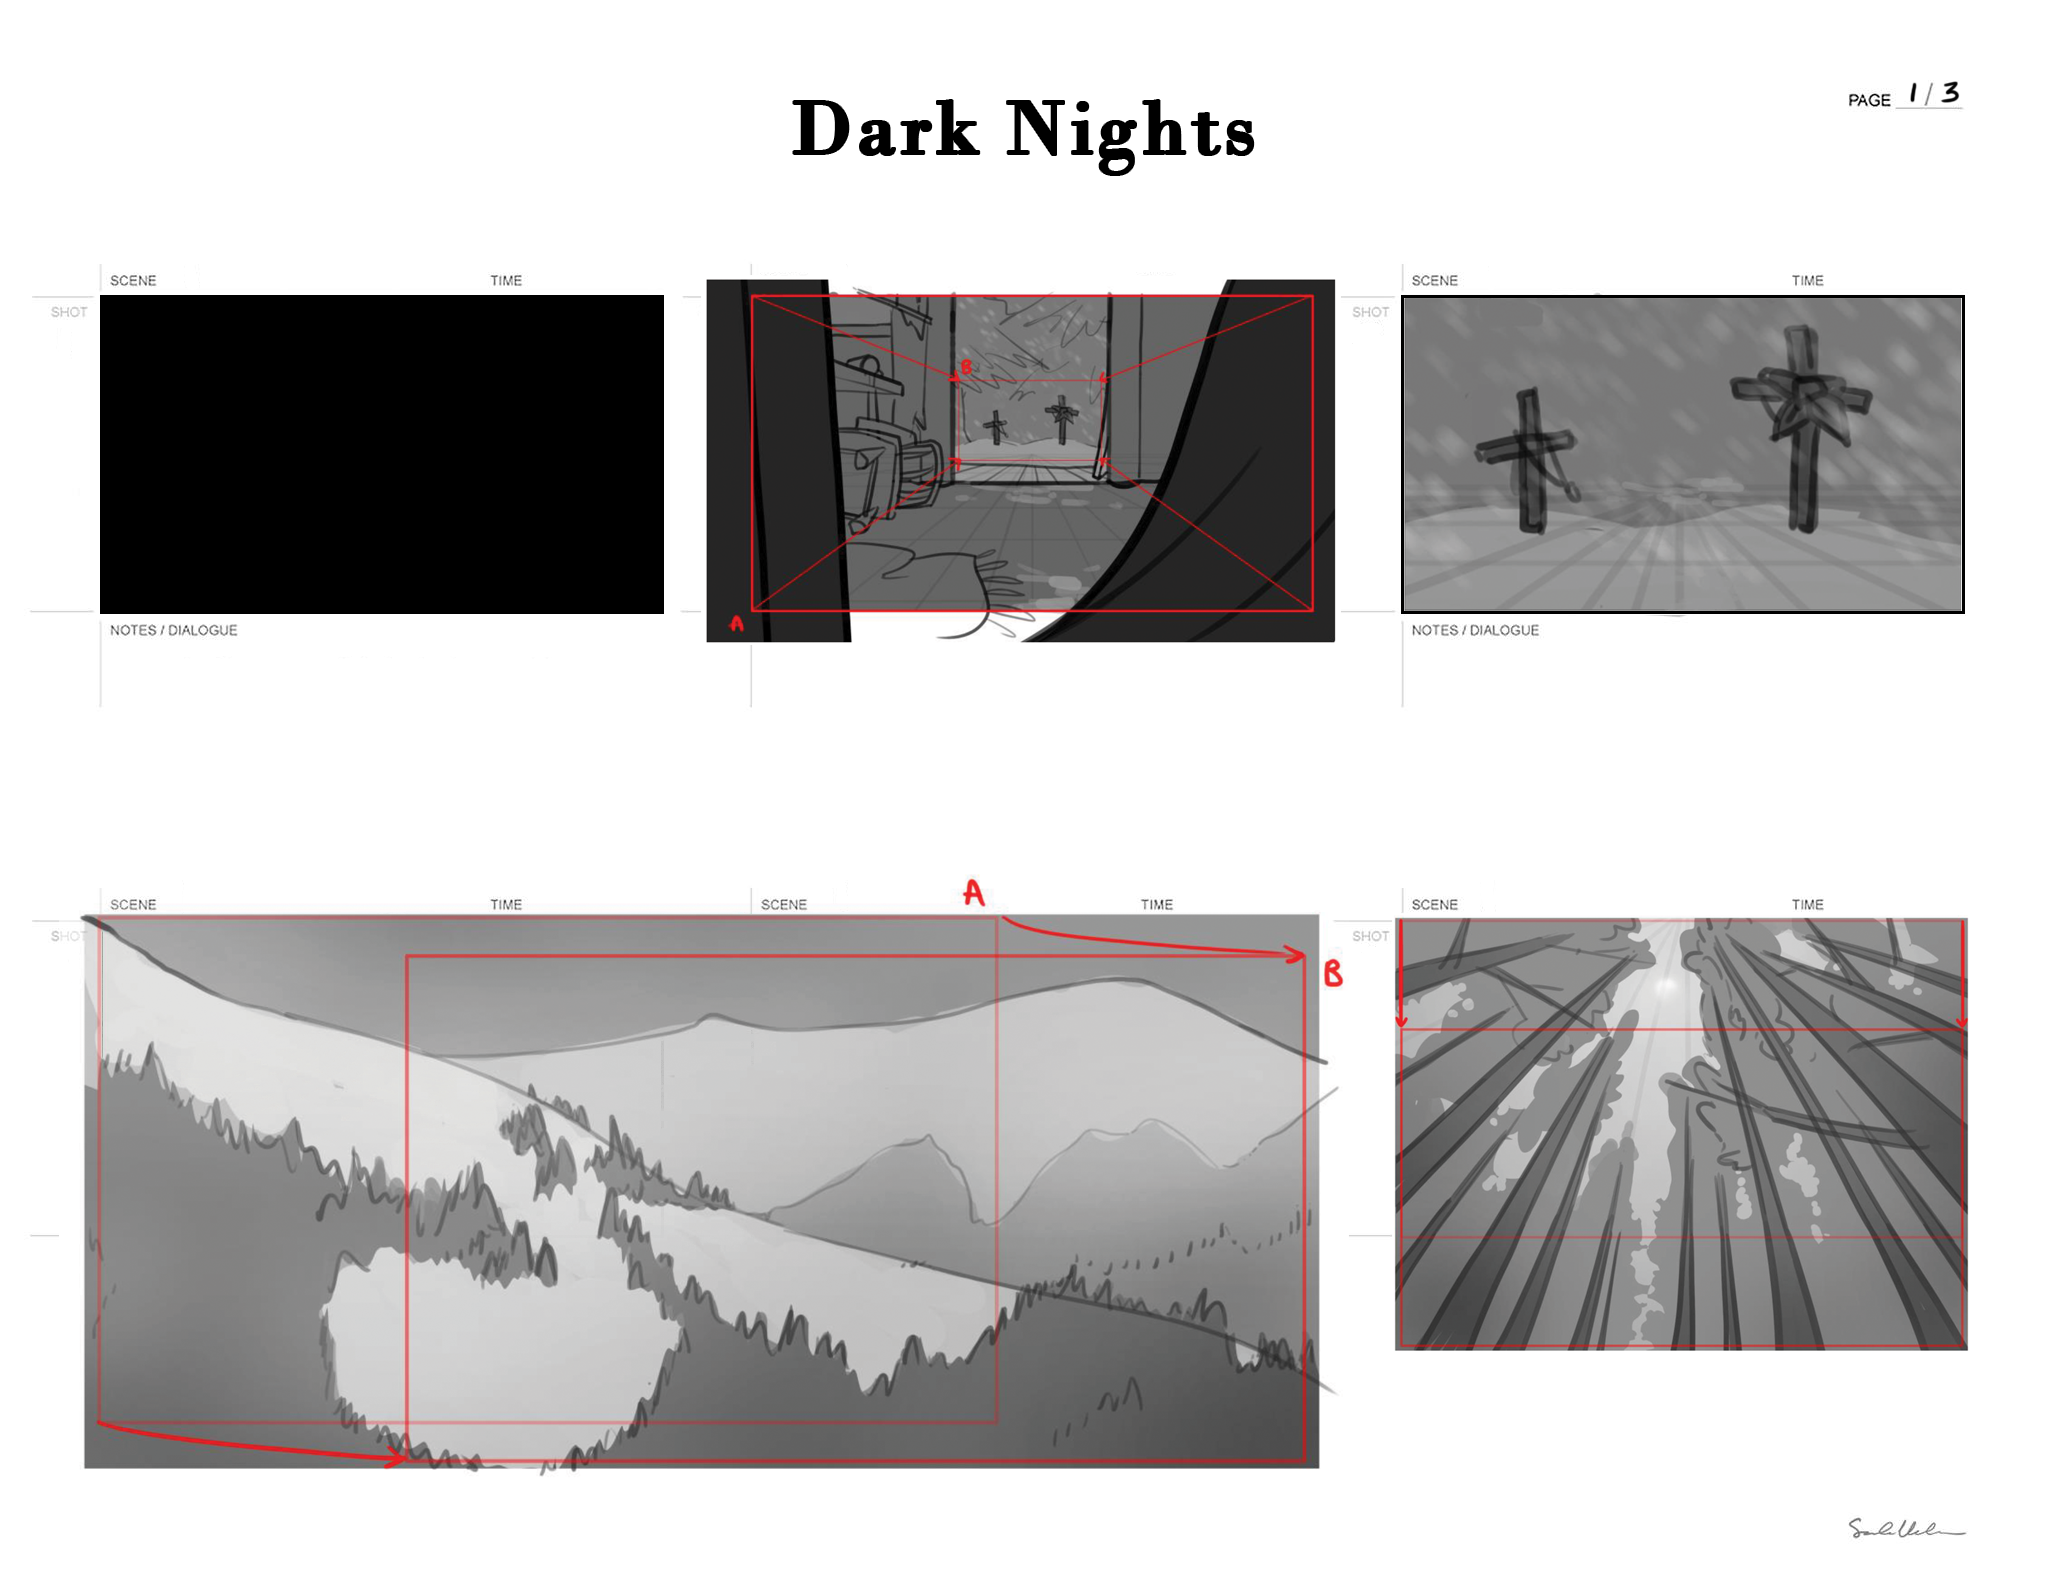 darknights_p001.png